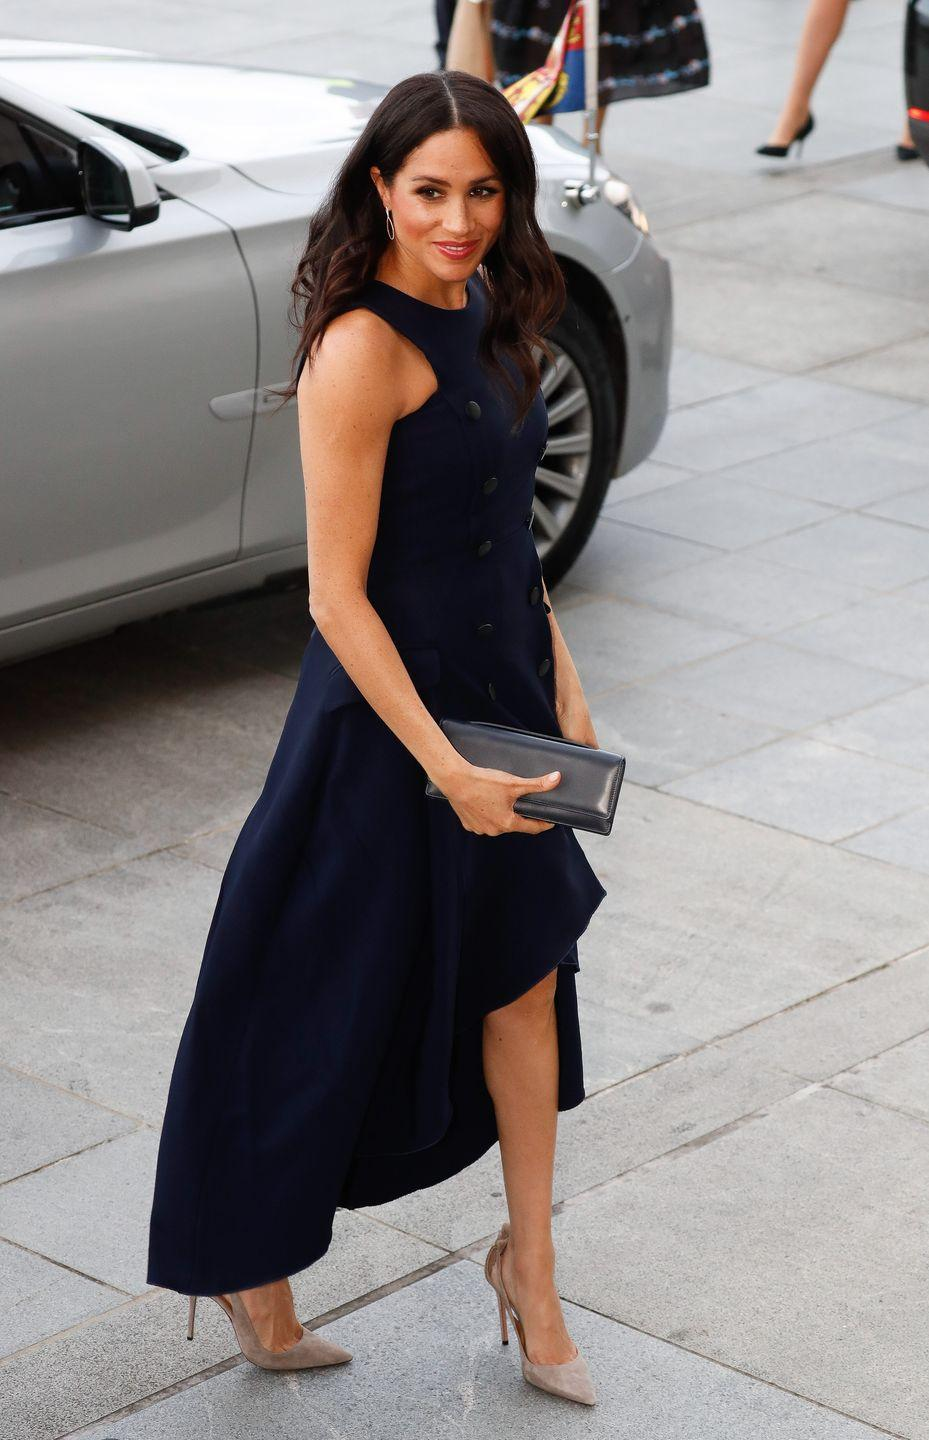 "<p>We all have to wear the same clothes over and over. Why can't the royals? Well, actually, they sometimes do! During the royal tour in New Zealand, Meghan sported a ruffled navy midi dress that has a romantic history for the couple: She wore it on her very first public outing with Prince Harry, <a href=""https://www.eonline.com/news/981830/meghan-markle-recycles-a-dress-from-her-first-public-outing-with-prince-harry?cmpid=rss-000000-rssfeed-365-fashion"" rel=""nofollow noopener"" target=""_blank"" data-ylk=""slk:E! Online points out"" class=""link rapid-noclick-resp"">E! Online points out</a>. So sweet! </p>"